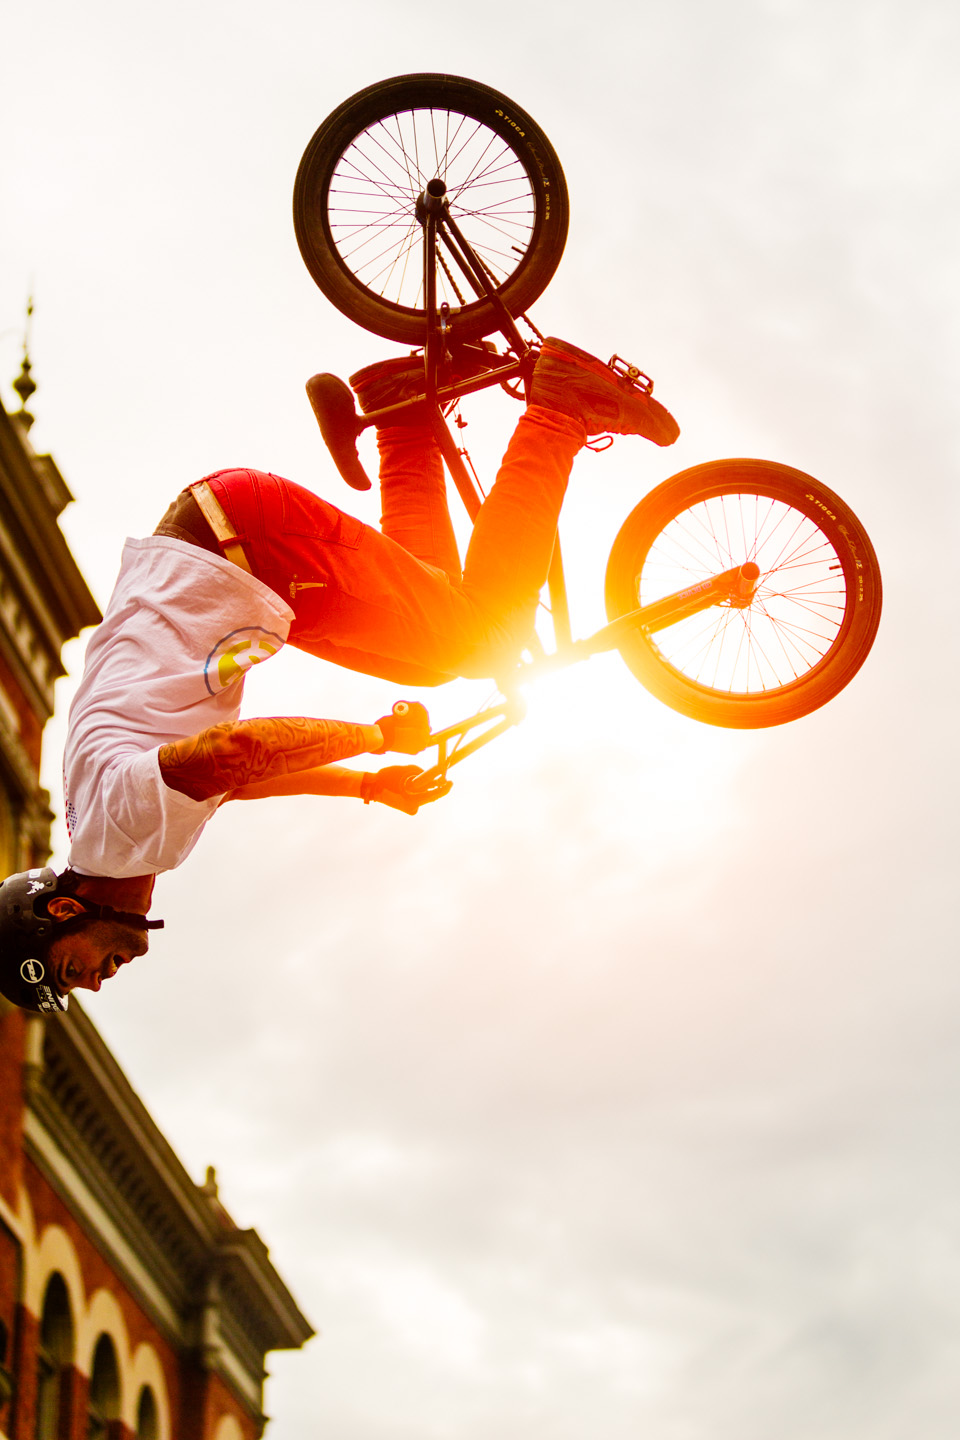 BMX Cyclist performs a backflip